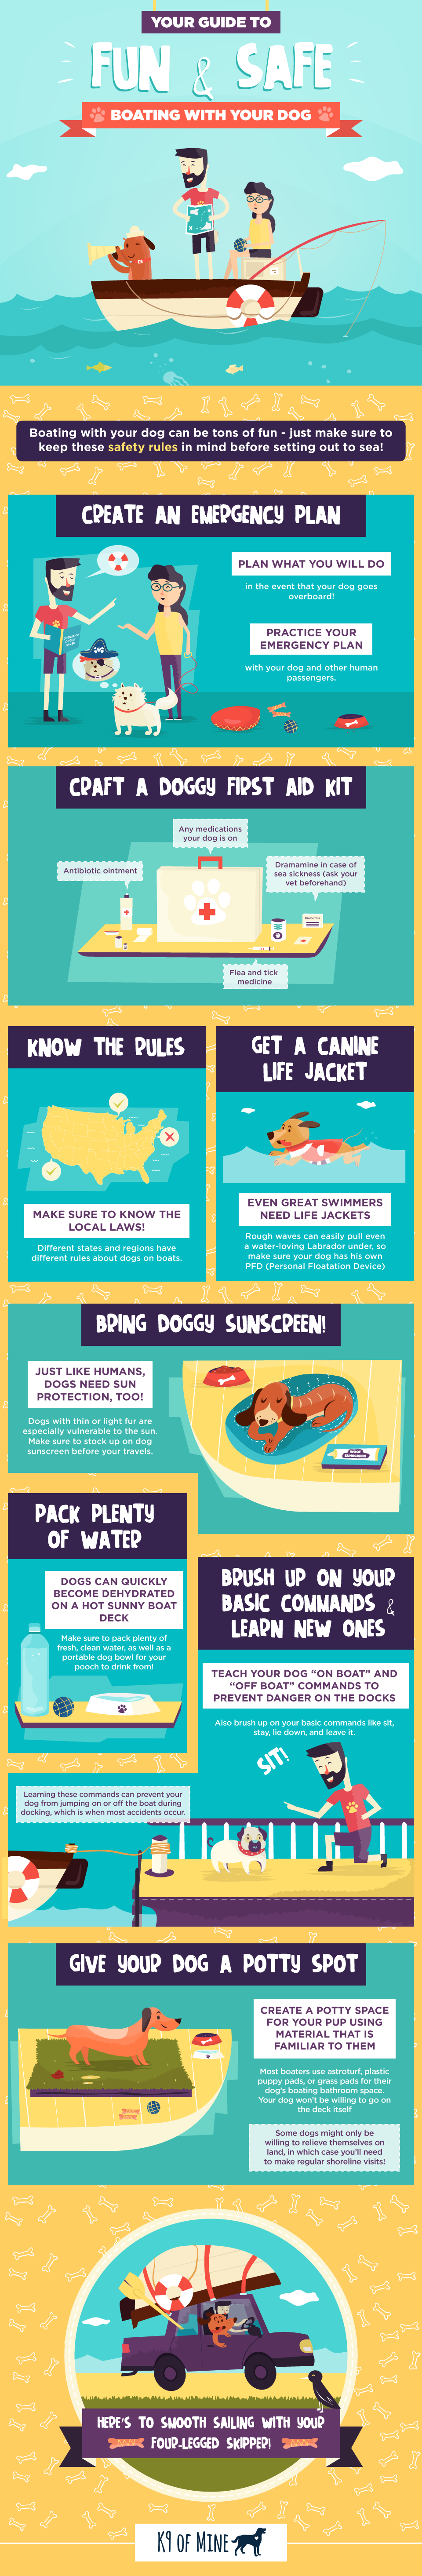 dog-boating-safety-infographic.png